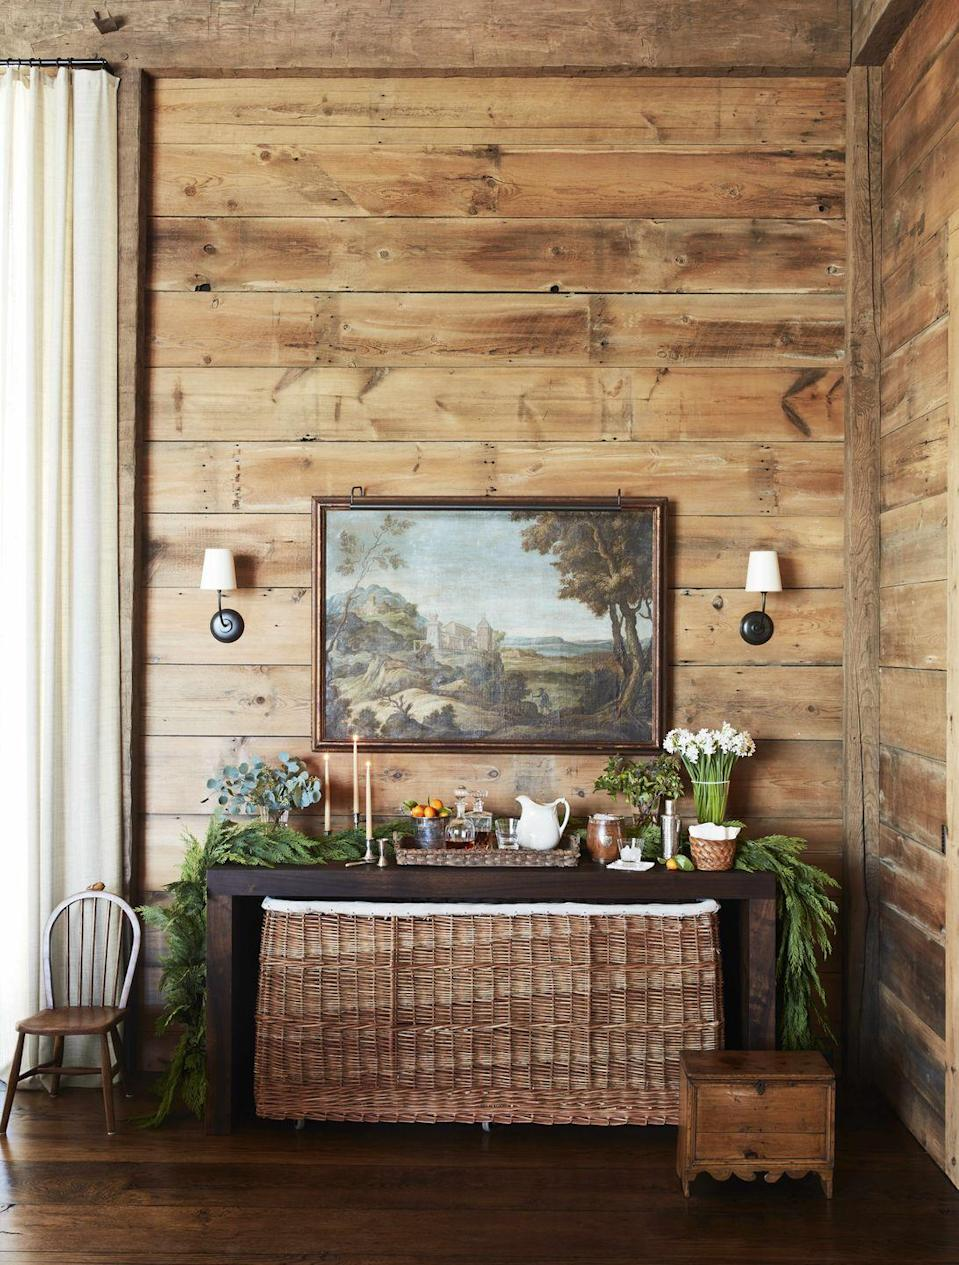 "<p>In this <a href=""https://www.veranda.com/decorating-ideas/a29416530/gil-schafer-vermont-party-barn/"" rel=""nofollow noopener"" target=""_blank"" data-ylk=""slk:Vermont party barn"" class=""link rapid-noclick-resp"">Vermont party barn</a> designed by <a href=""https://gpschafer.com/"" rel=""nofollow noopener"" target=""_blank"" data-ylk=""slk:Gil Schafer"" class=""link rapid-noclick-resp"">Gil Schafer</a>, a custom wicker and leather log basket (<a href=""https://howelondon.com/"" rel=""nofollow noopener"" target=""_blank"" data-ylk=""slk:Howe London"" class=""link rapid-noclick-resp"">Howe London</a>) snugly fits under a black walnut console. The versatile piece makes it easy to store linens for all sorts of occasions. </p>"